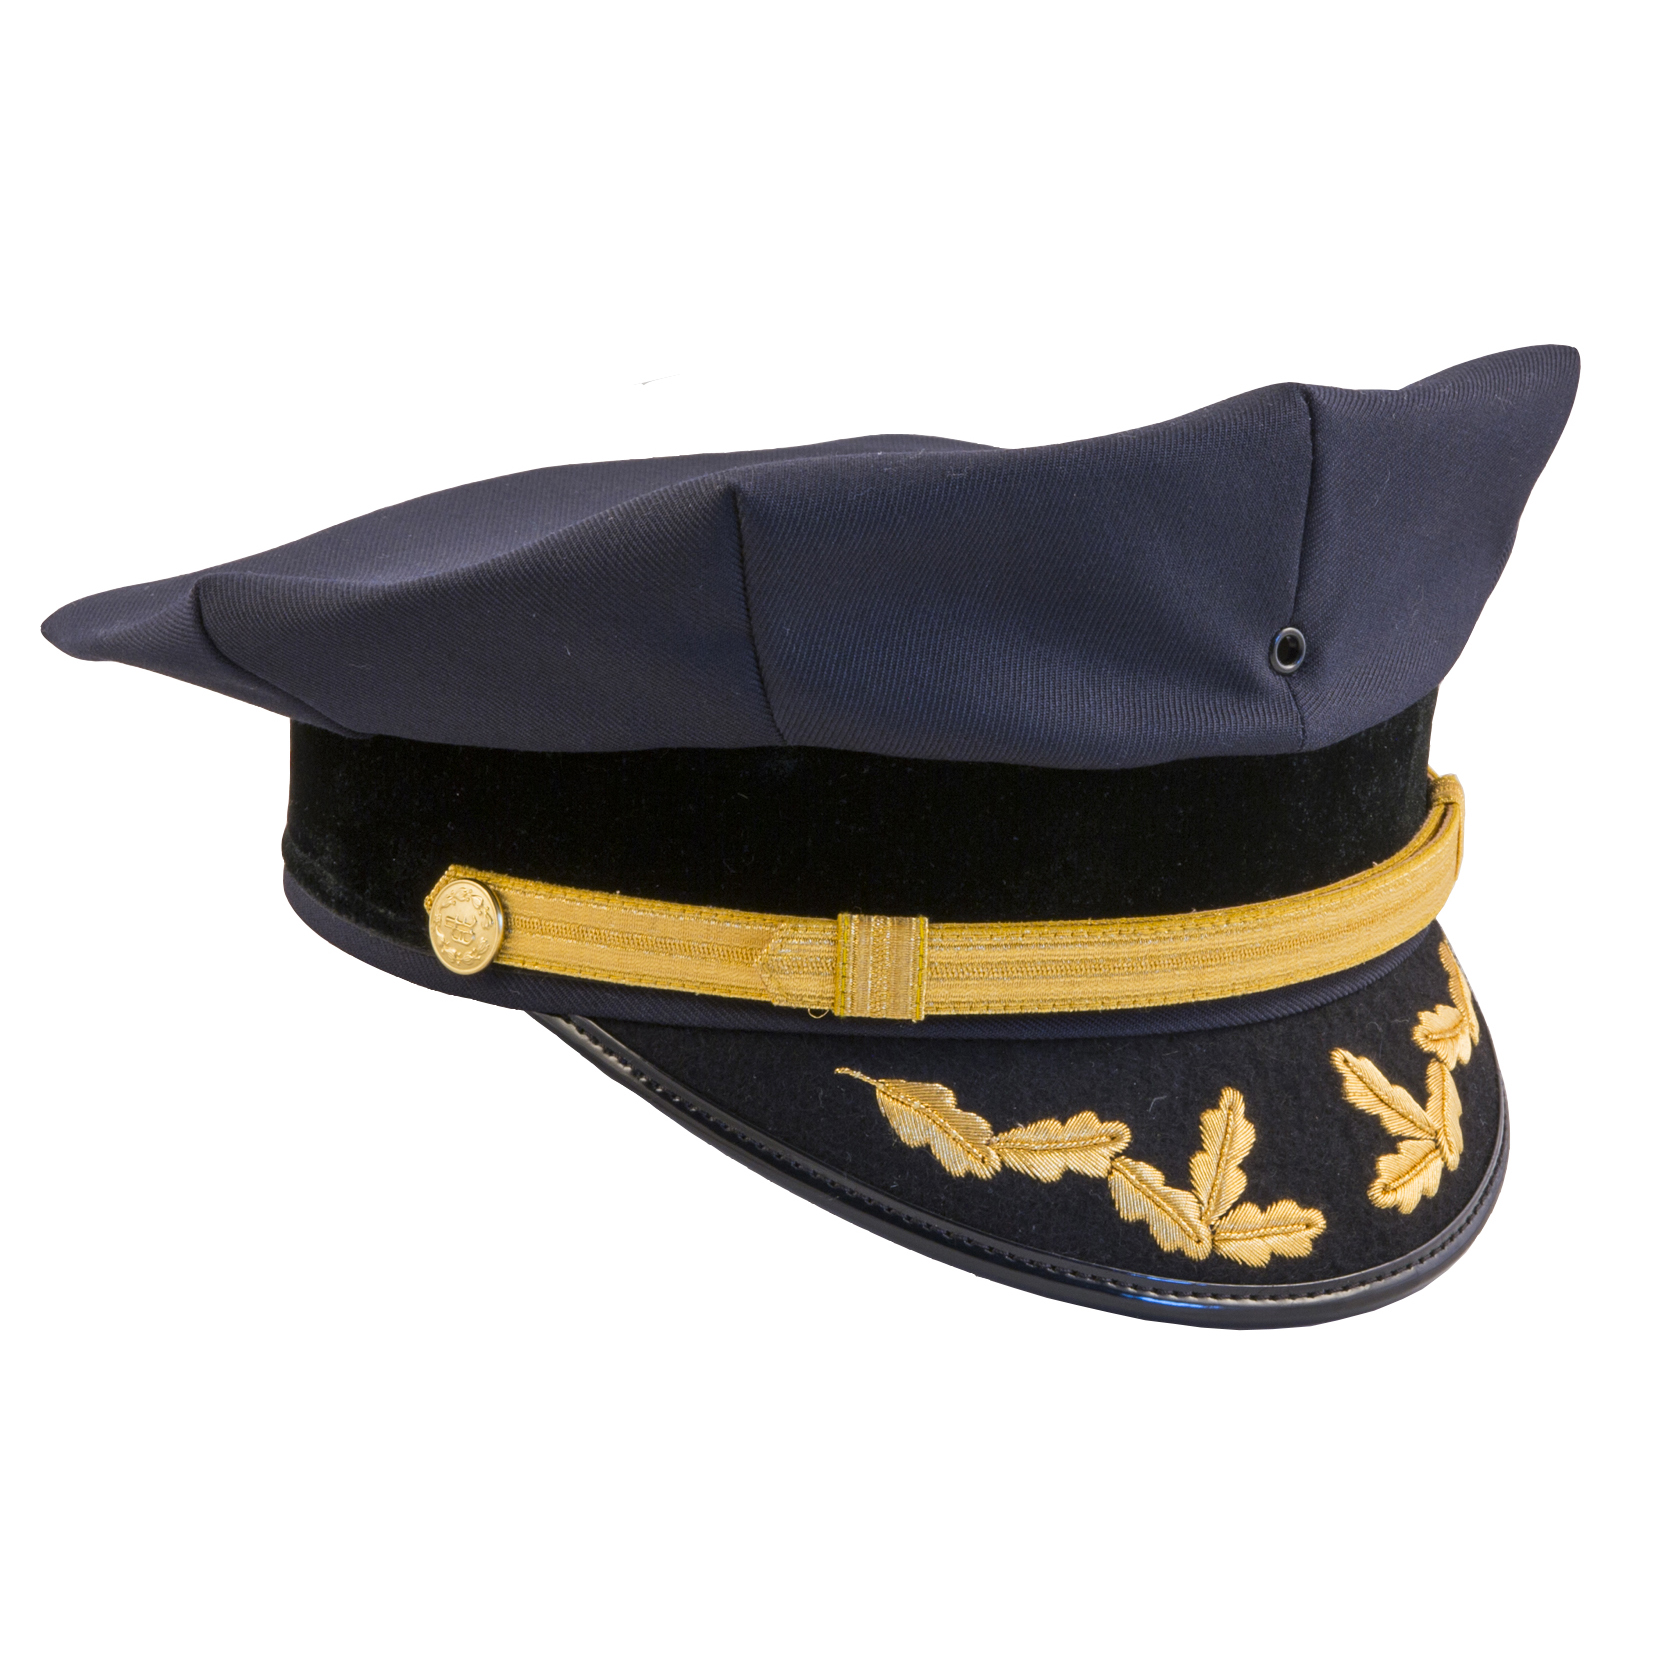 1672x1672 8 Point Cap Style No. Nypd Chief Bayly Hats